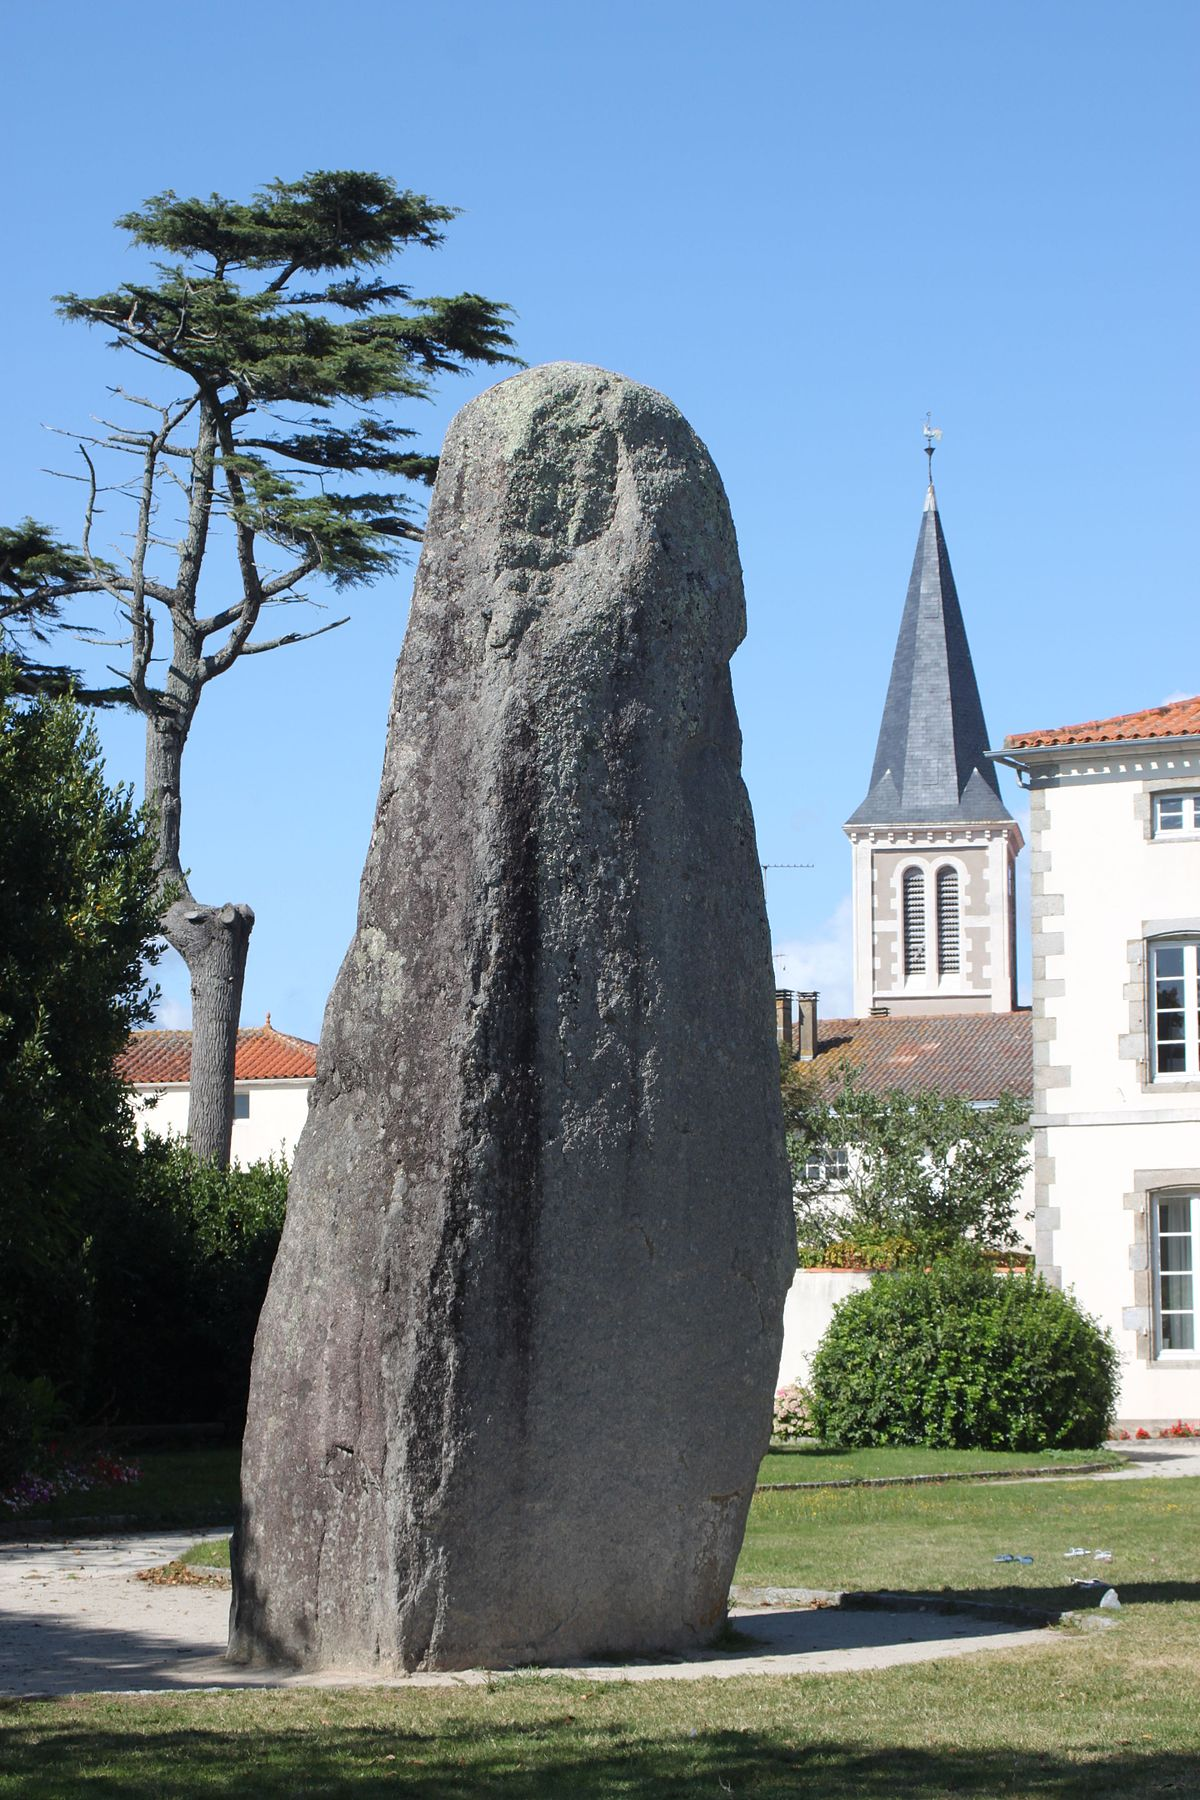 Menhir von bourg jardin wikipedia for Jardin 85